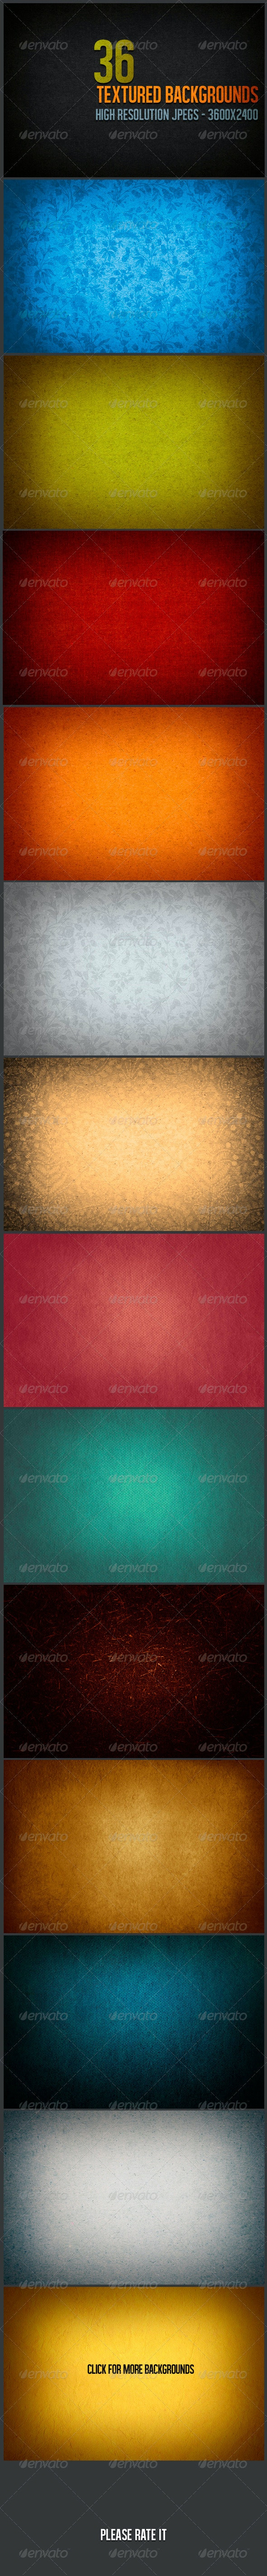 36 Textured Backgrounds - Backgrounds Graphics